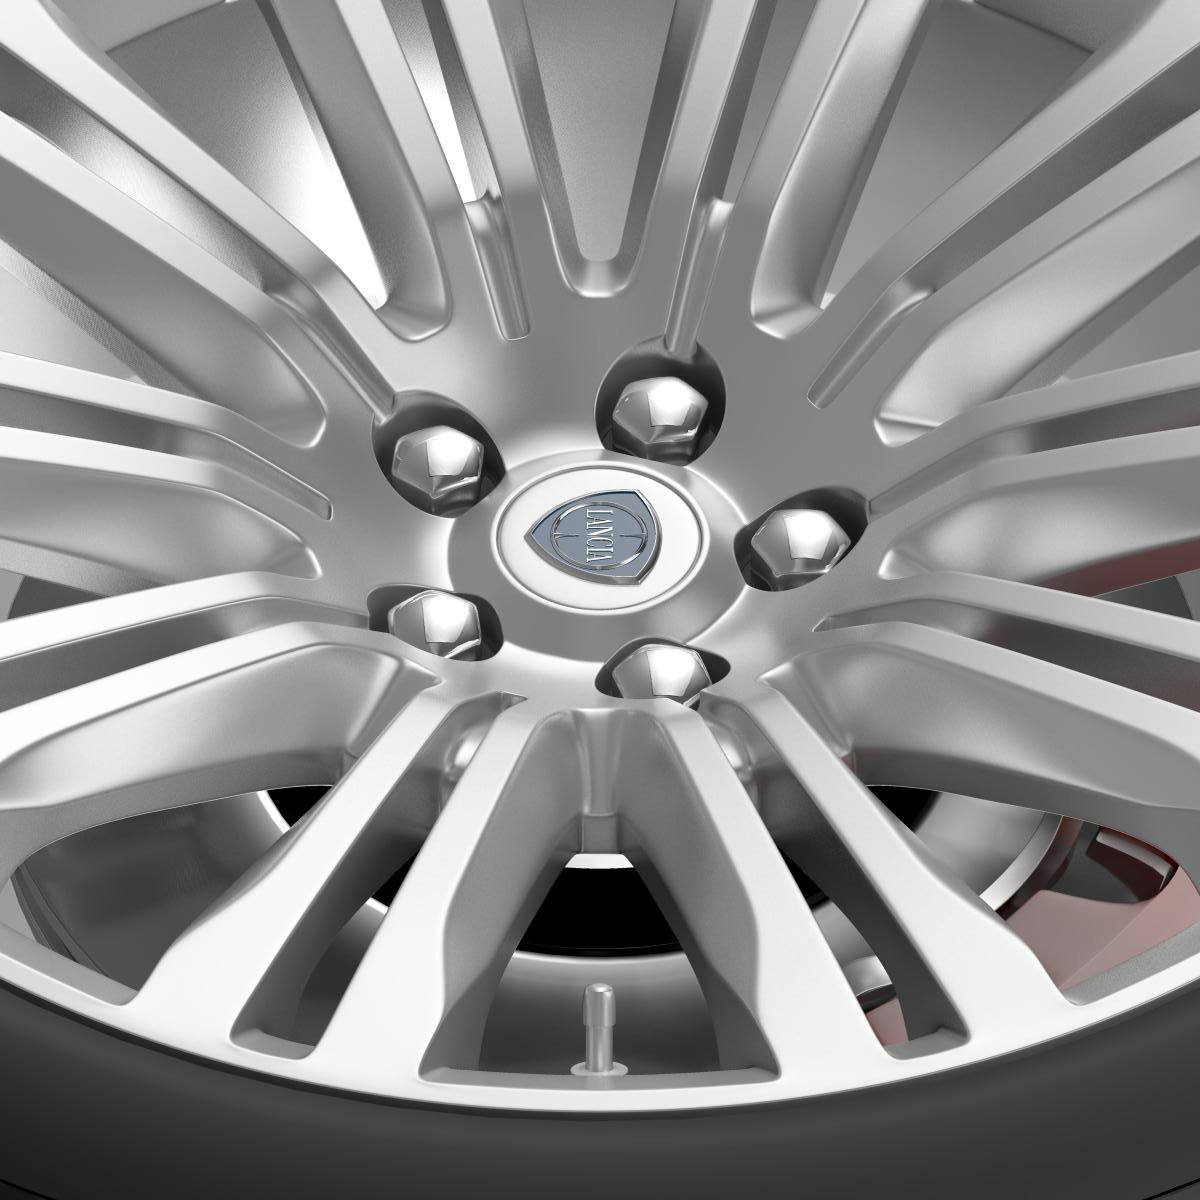 lancia thema 2014 wheel 3d model 3ds max fbx c4d lwo ma mb hrc xsi obj 210731